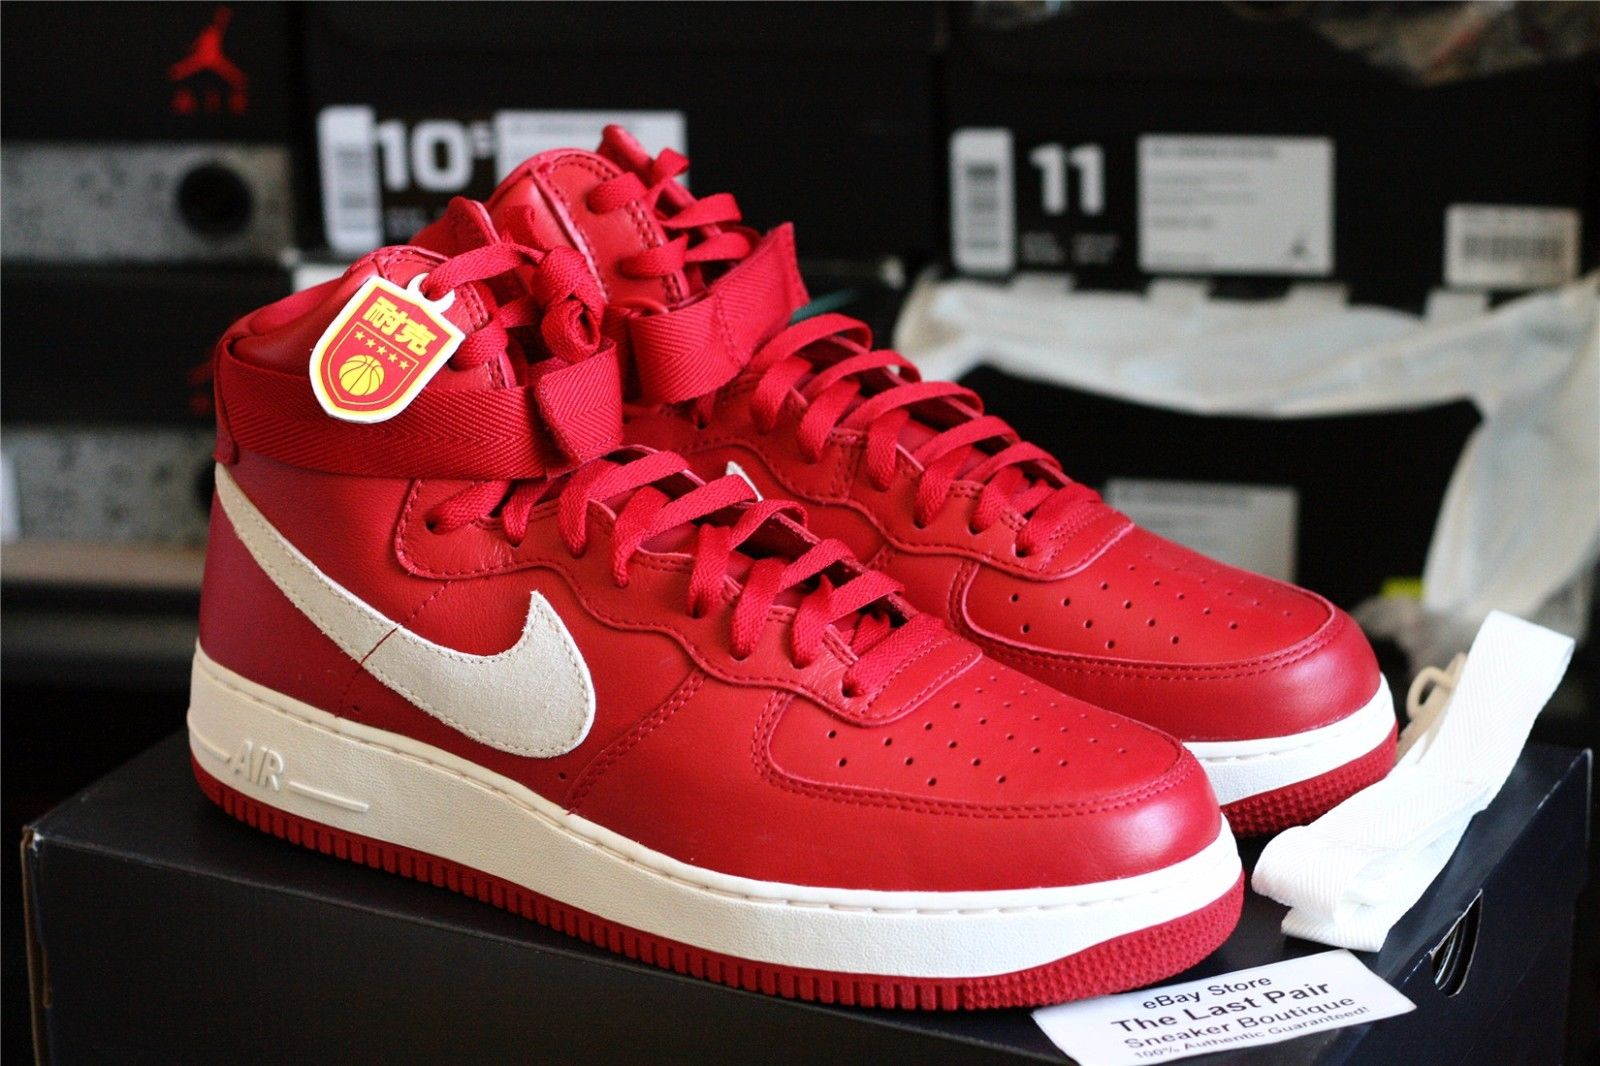 innovative design 0cdcf 96f96 These Nike Air Force 1s Finally Released in the U.S.   Sole Collector